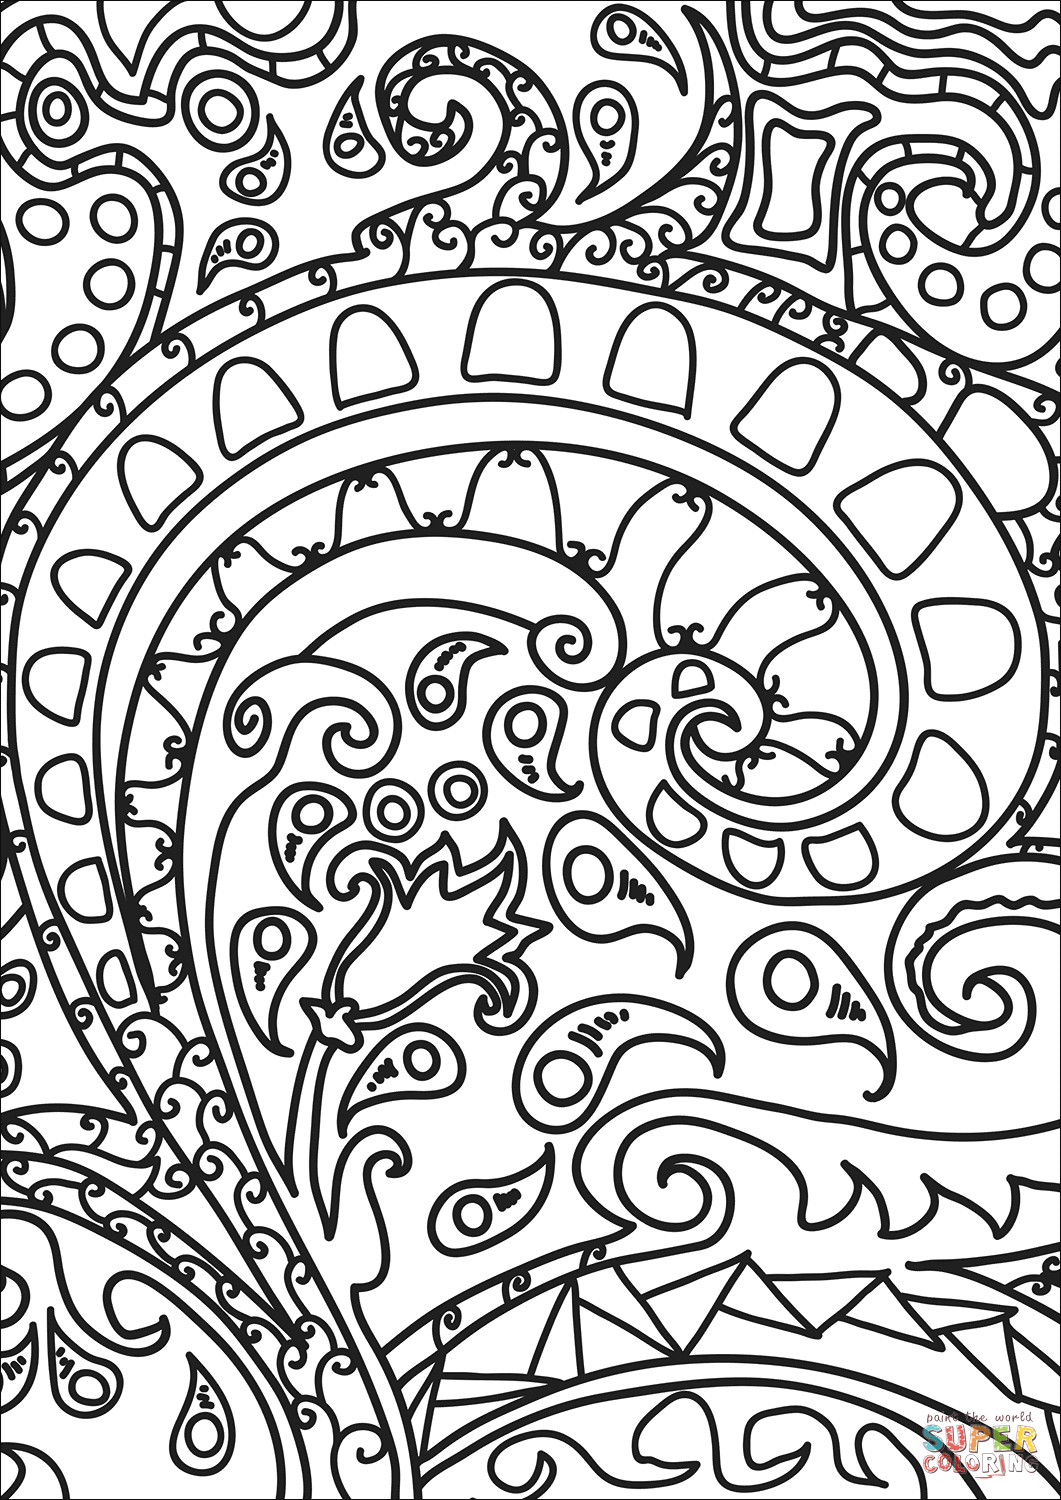 coloring page websites free printable spider web coloring pages for kids page coloring websites